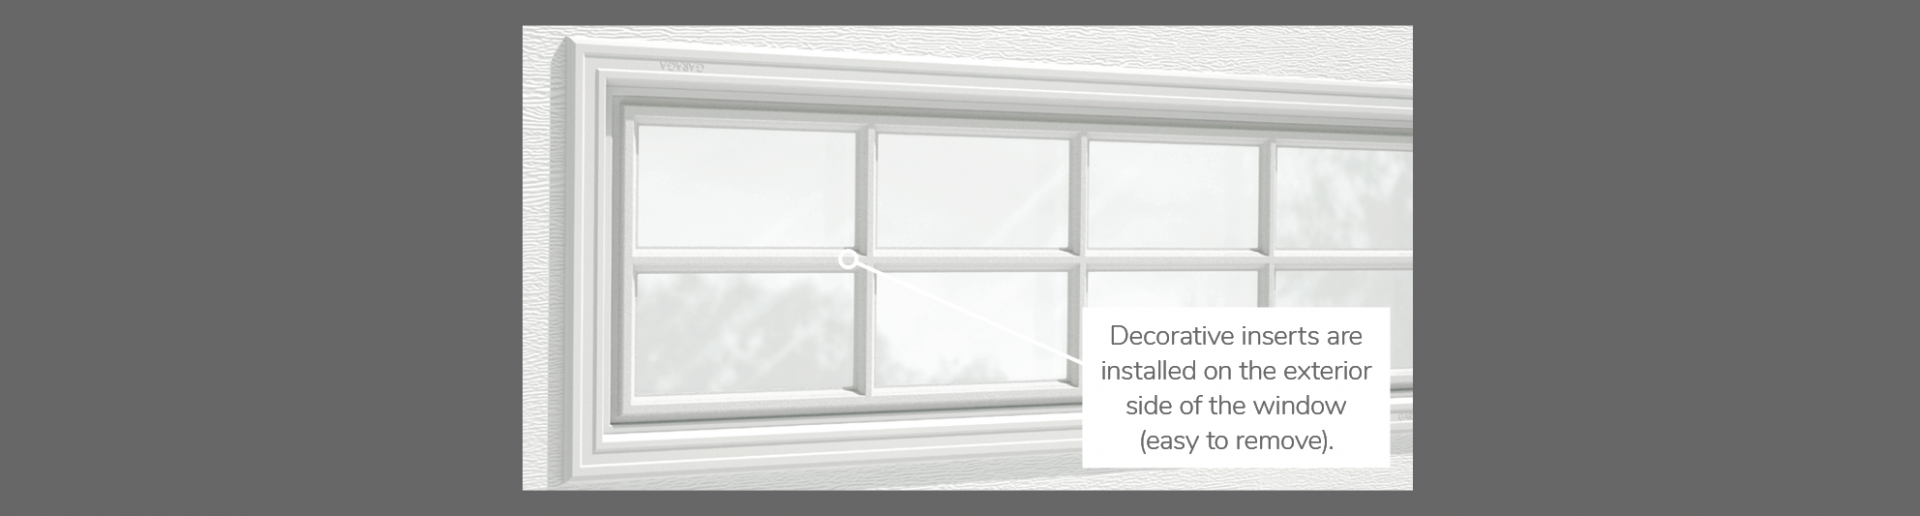 "Stockton Decorative Insert, 21"" x 13"" and 40"" x 13"", available for door R-16, R-12"